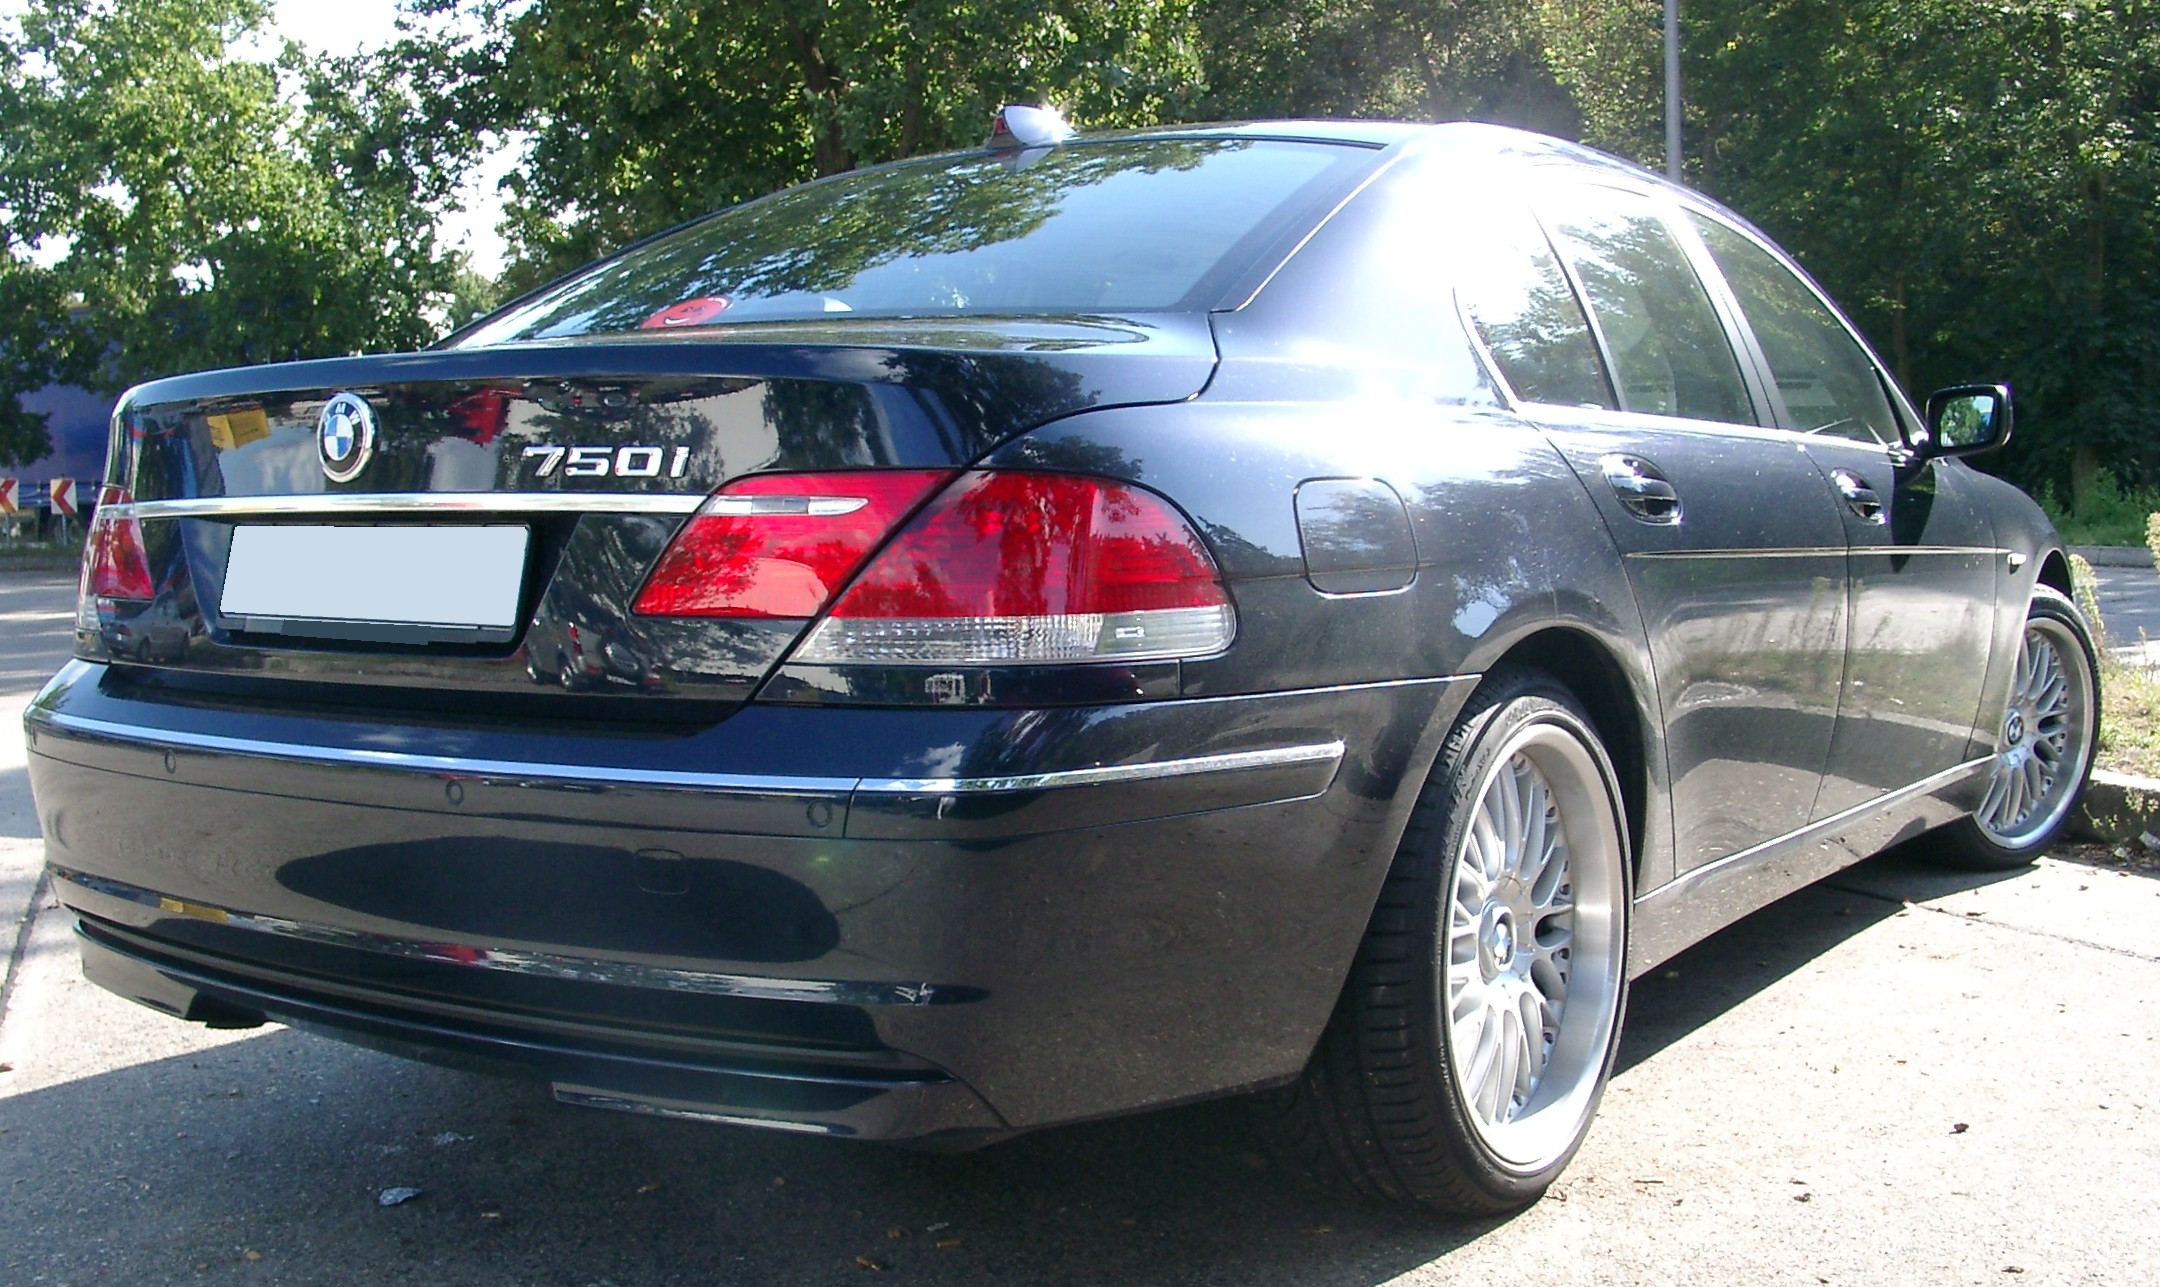 Datoteka Bmw E65 Rear 20070904 Jpg Wikipedija